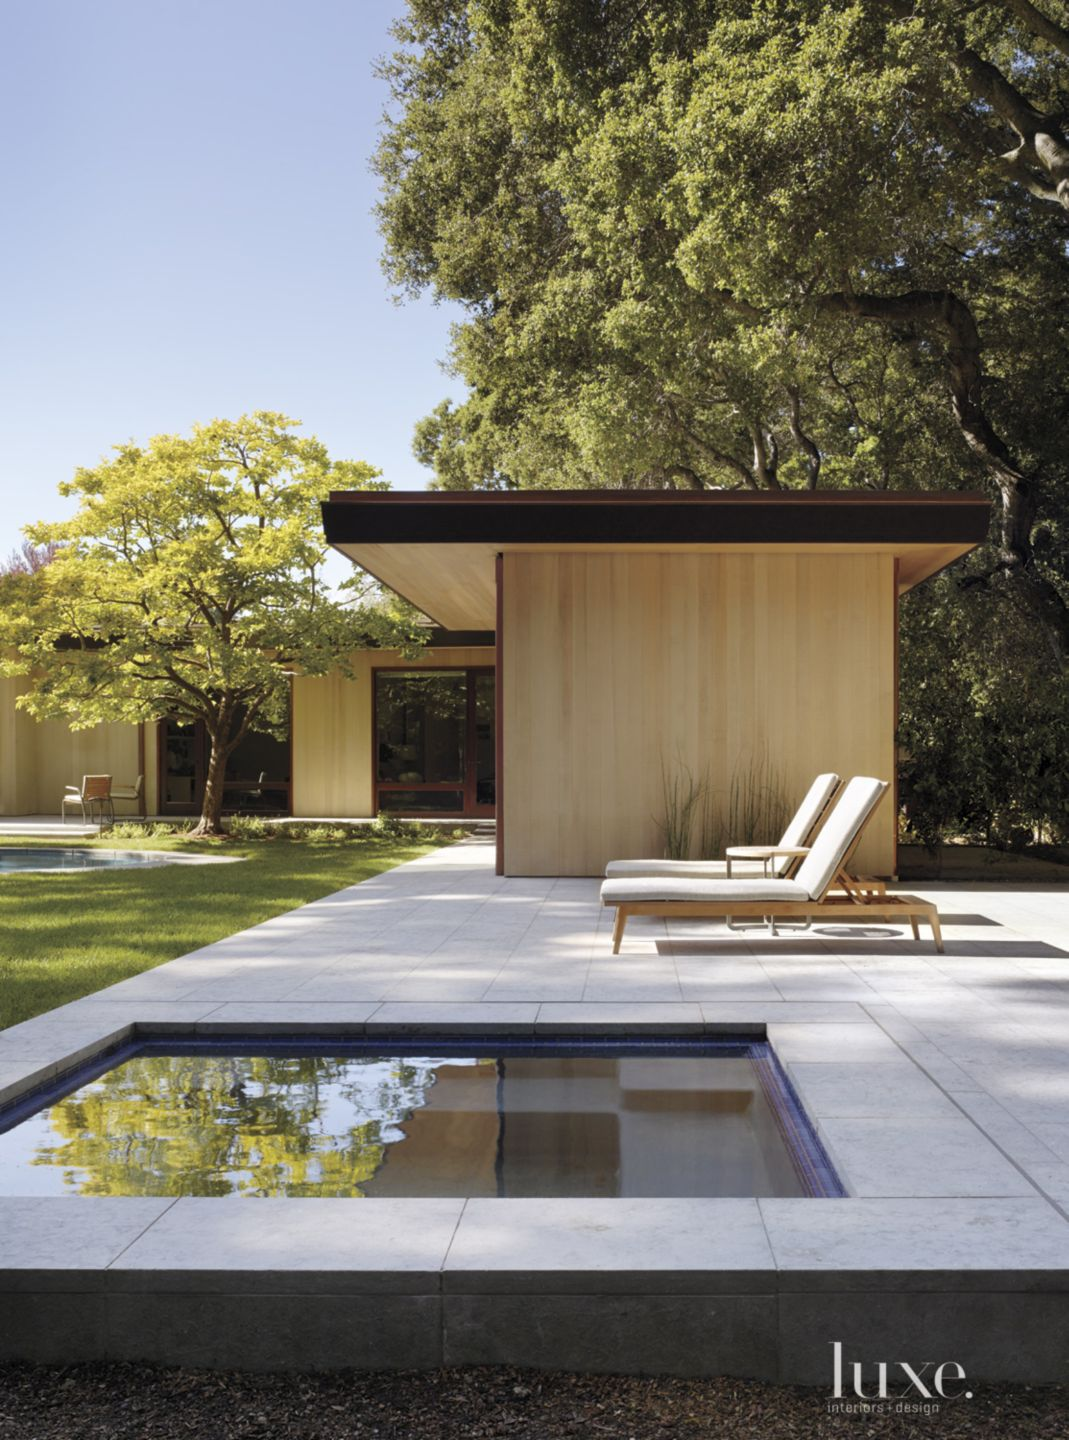 Modern Pavilion with Chaise Lounges